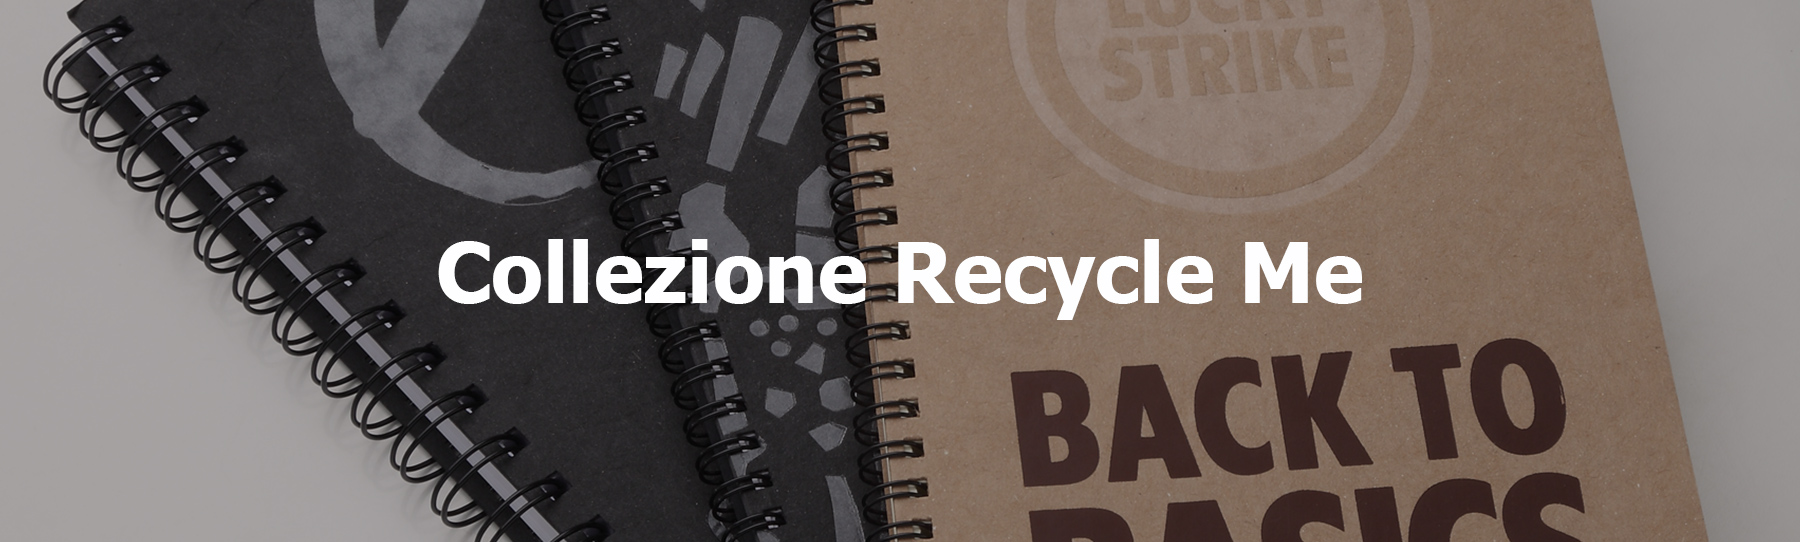 Header Recyleme dinatalestyle